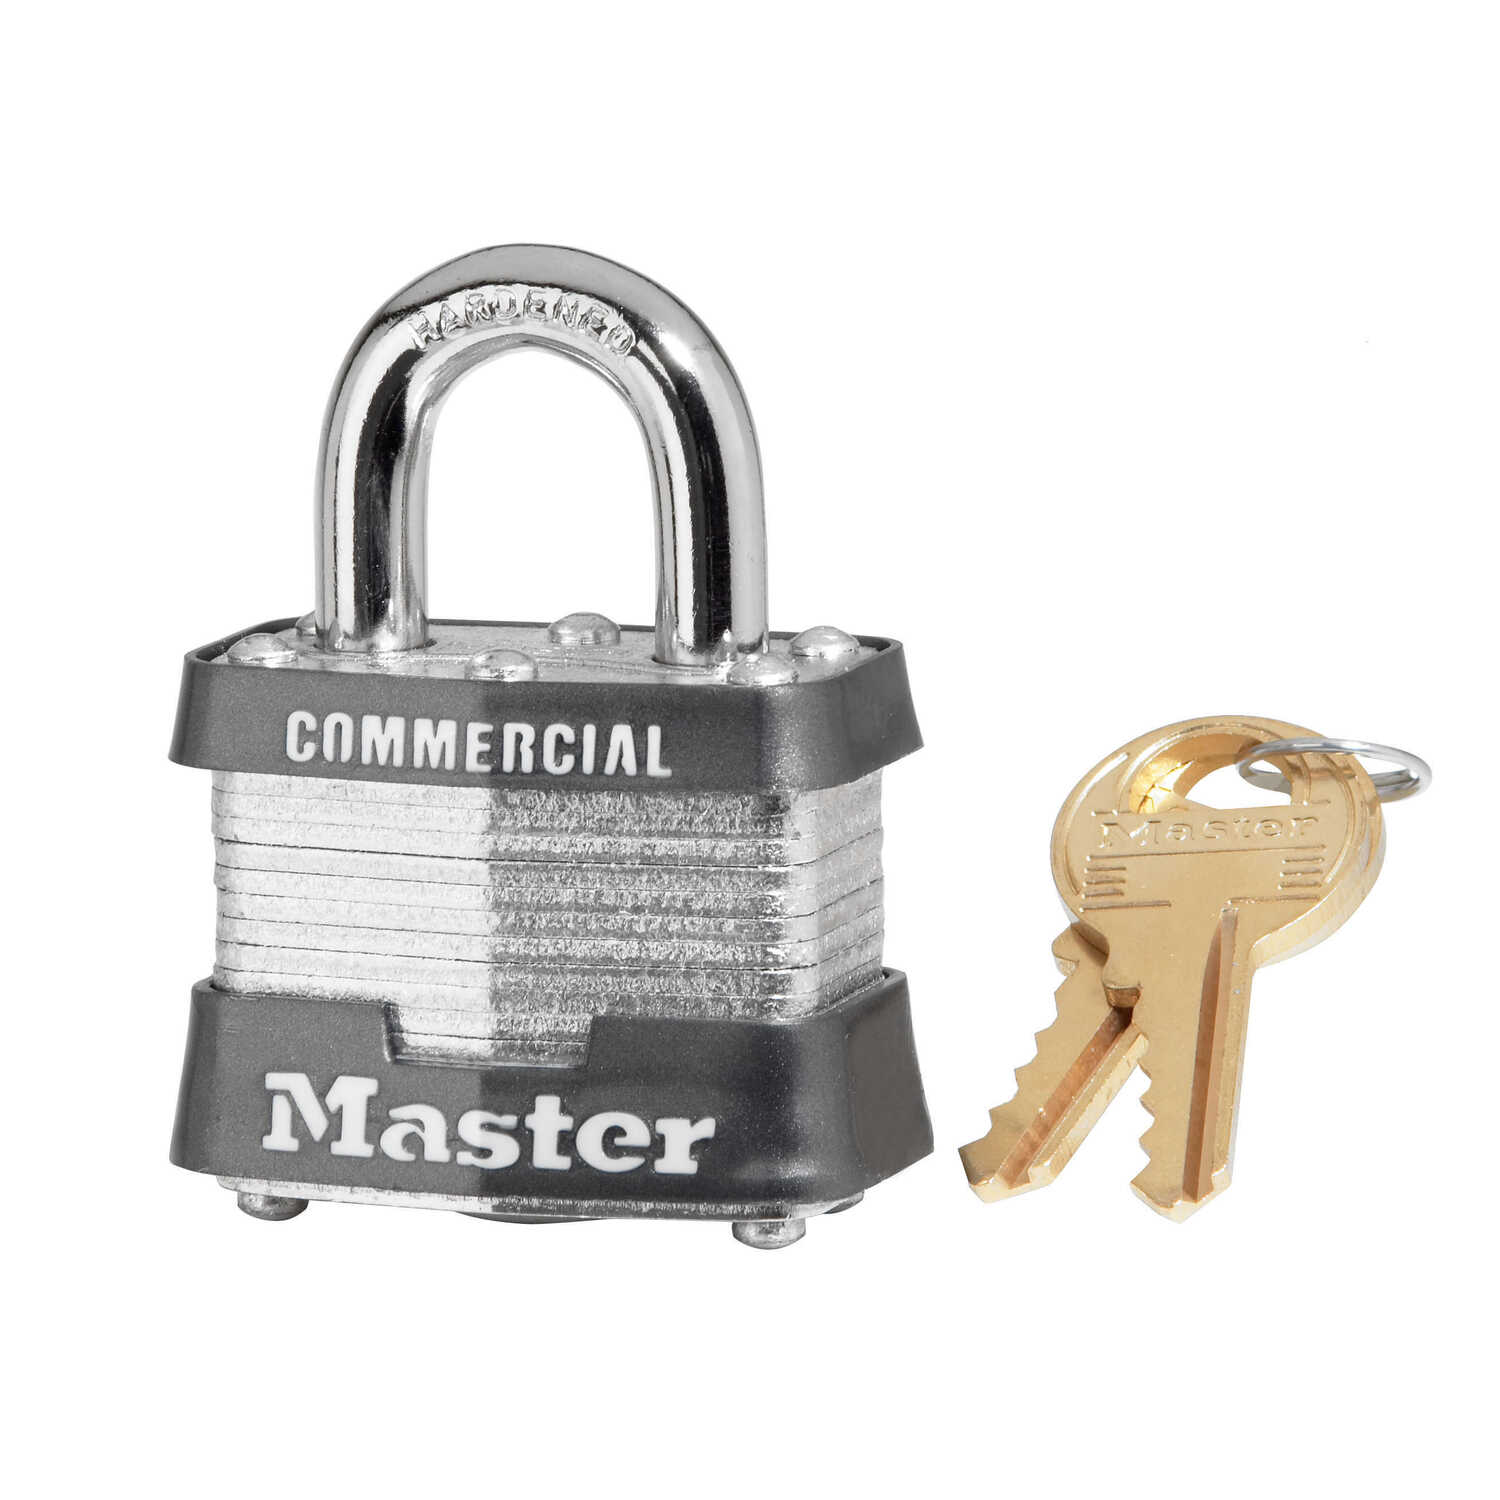 Master Lock  1-5/16 in. H x 1-5/8 in. W x 1-1/2 in. L Laminated Steel  Double Locking  Padlock  6 pk